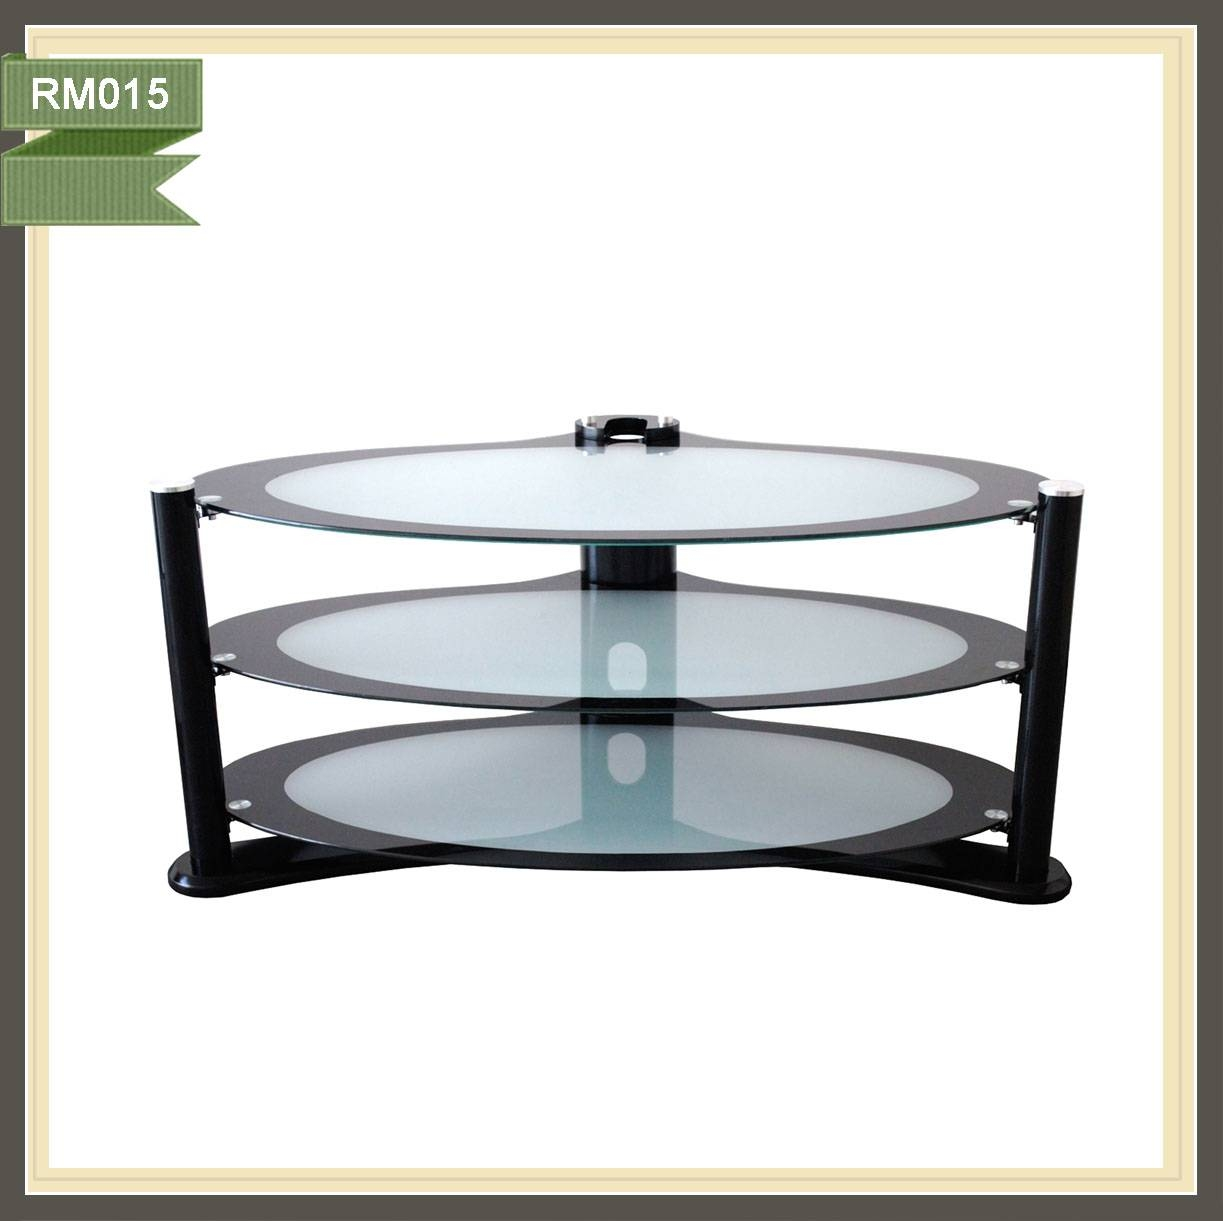 Wall Mounted Tv Showcase, Wall Mounted Tv Showcase Suppliers And within Oval Glass Tv Stands (Image 14 of 15)